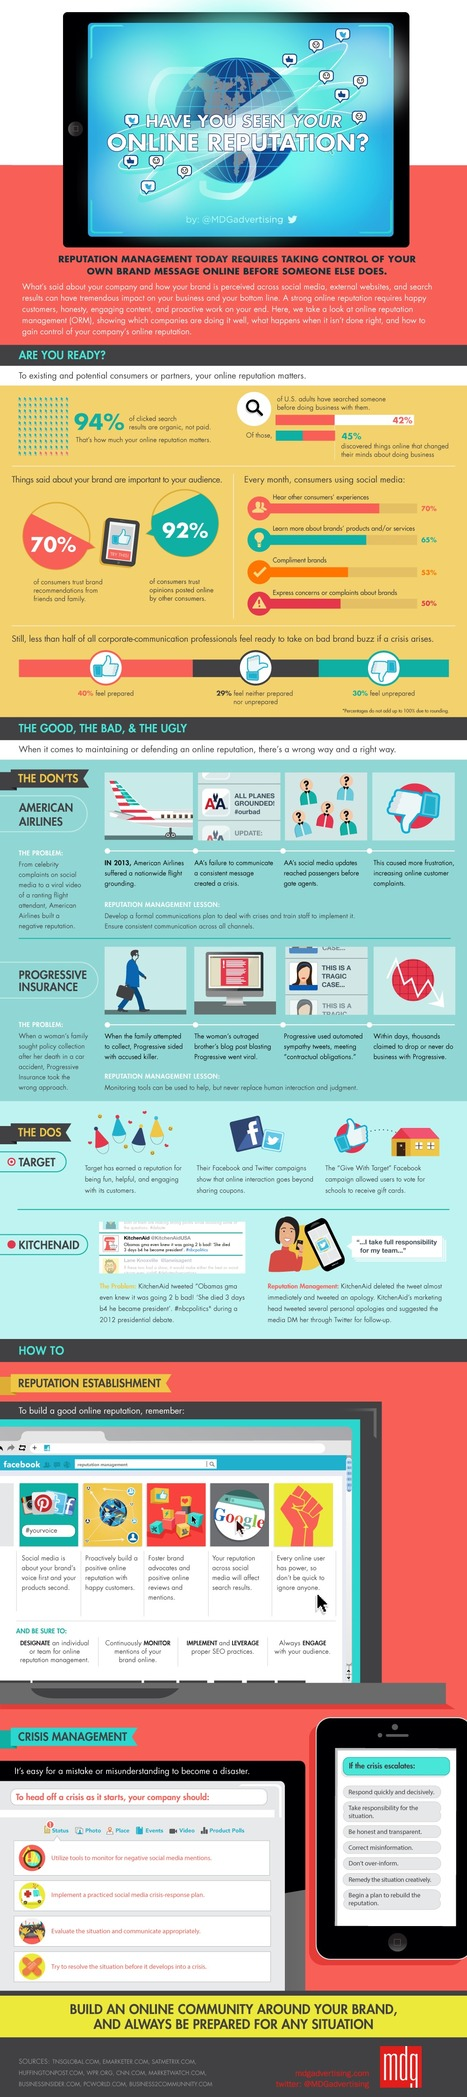 How Social Media Can Help or Harm Your Online Reputation [Infographic] - SocialTimes | Everything from Social Media to F1 to Photography to Anything Interesting | Scoop.it